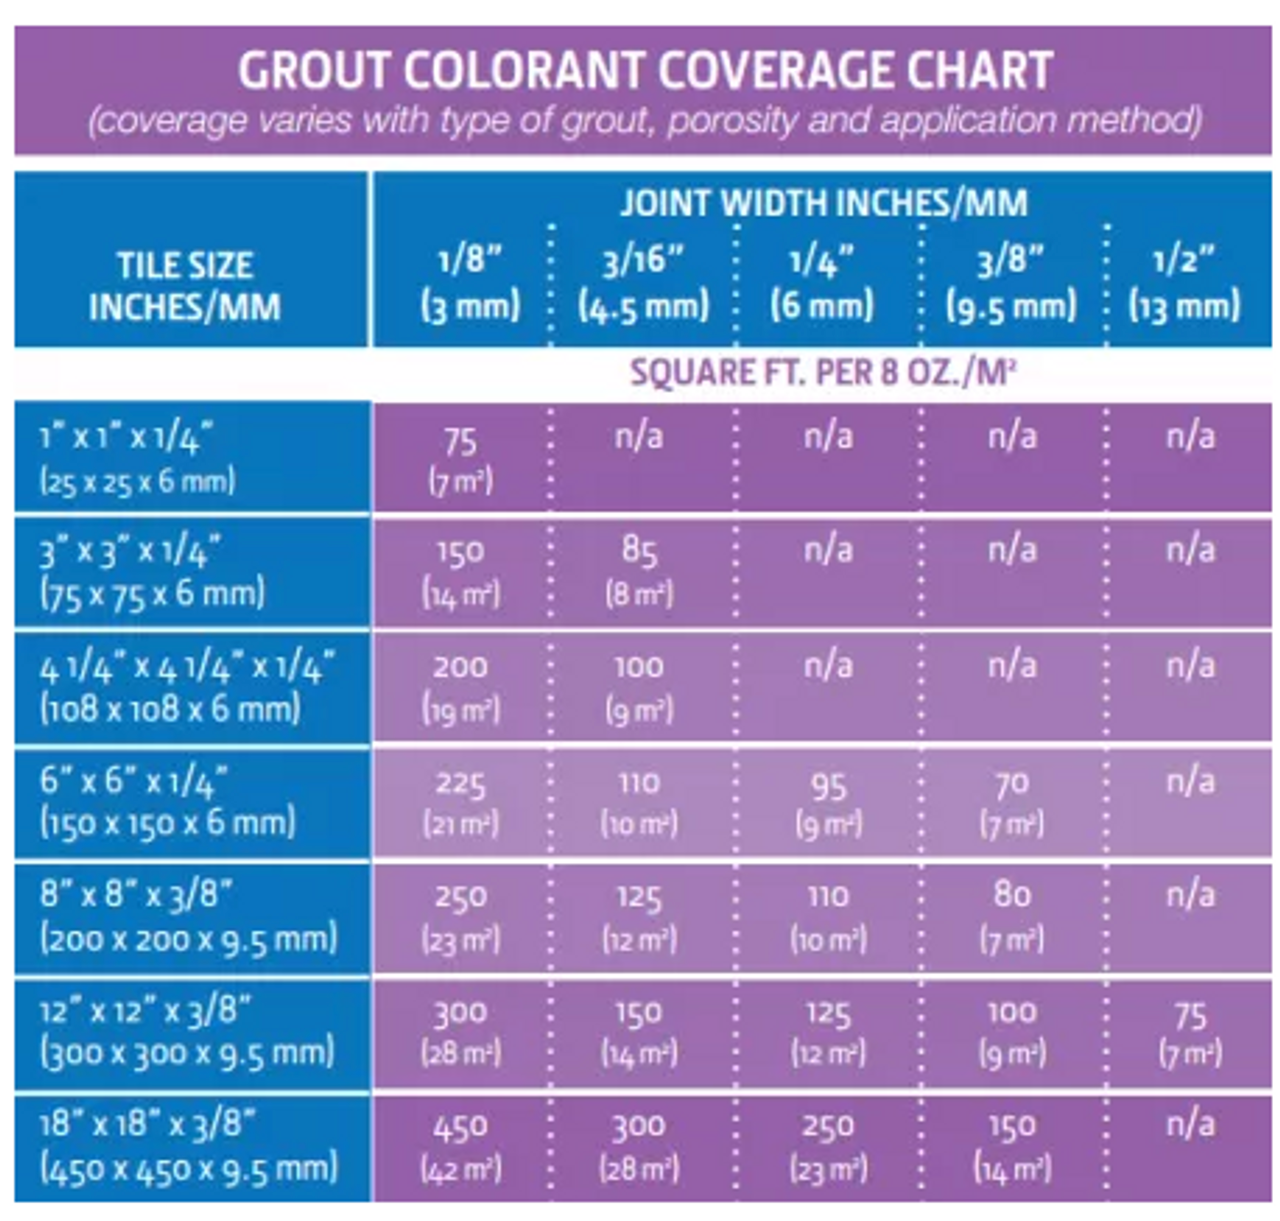 Aqua Mix Grout Colourant Coverage Chart